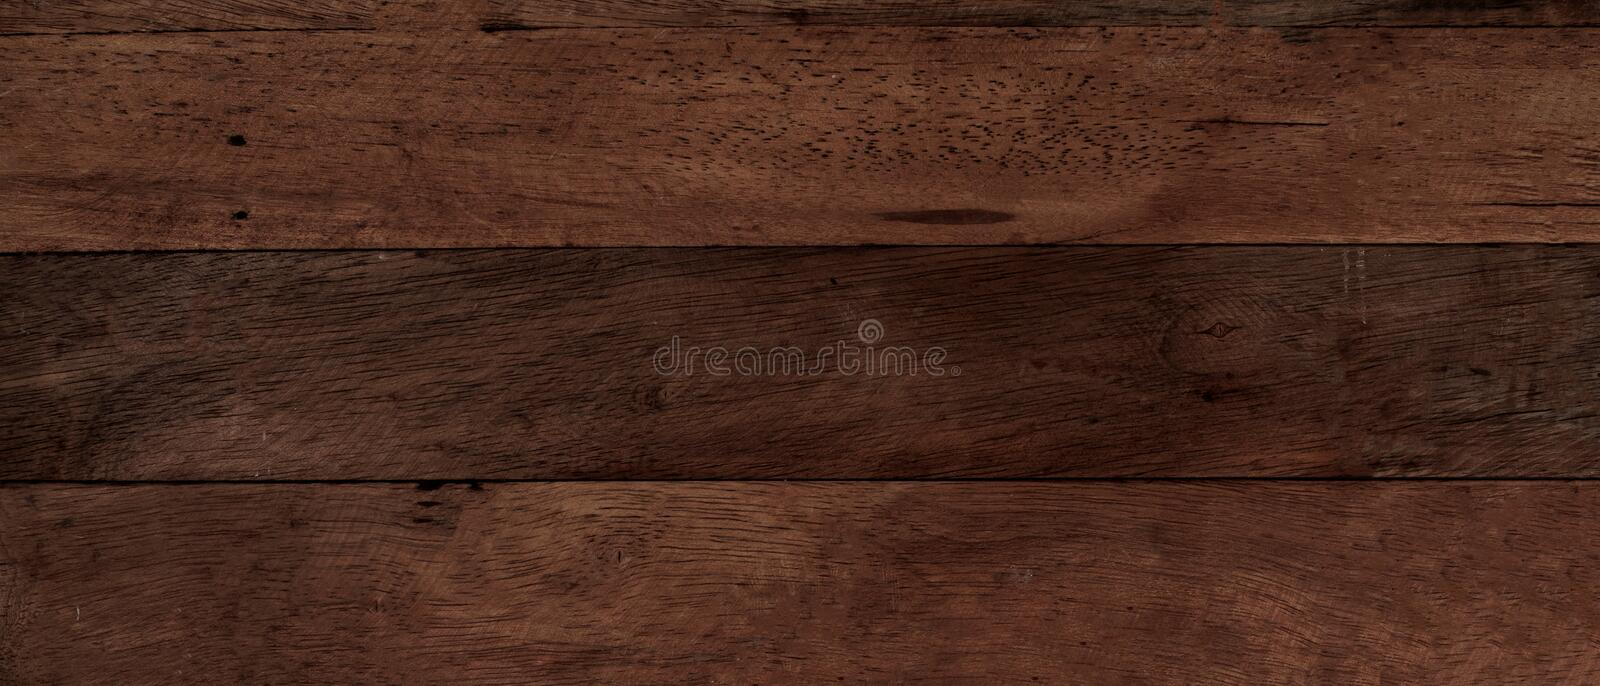 Closeup of old natural wood grunge texture. Dark surface with old natural wooden pattern. Vintage wooden floor. Panoramic royalty free stock photos